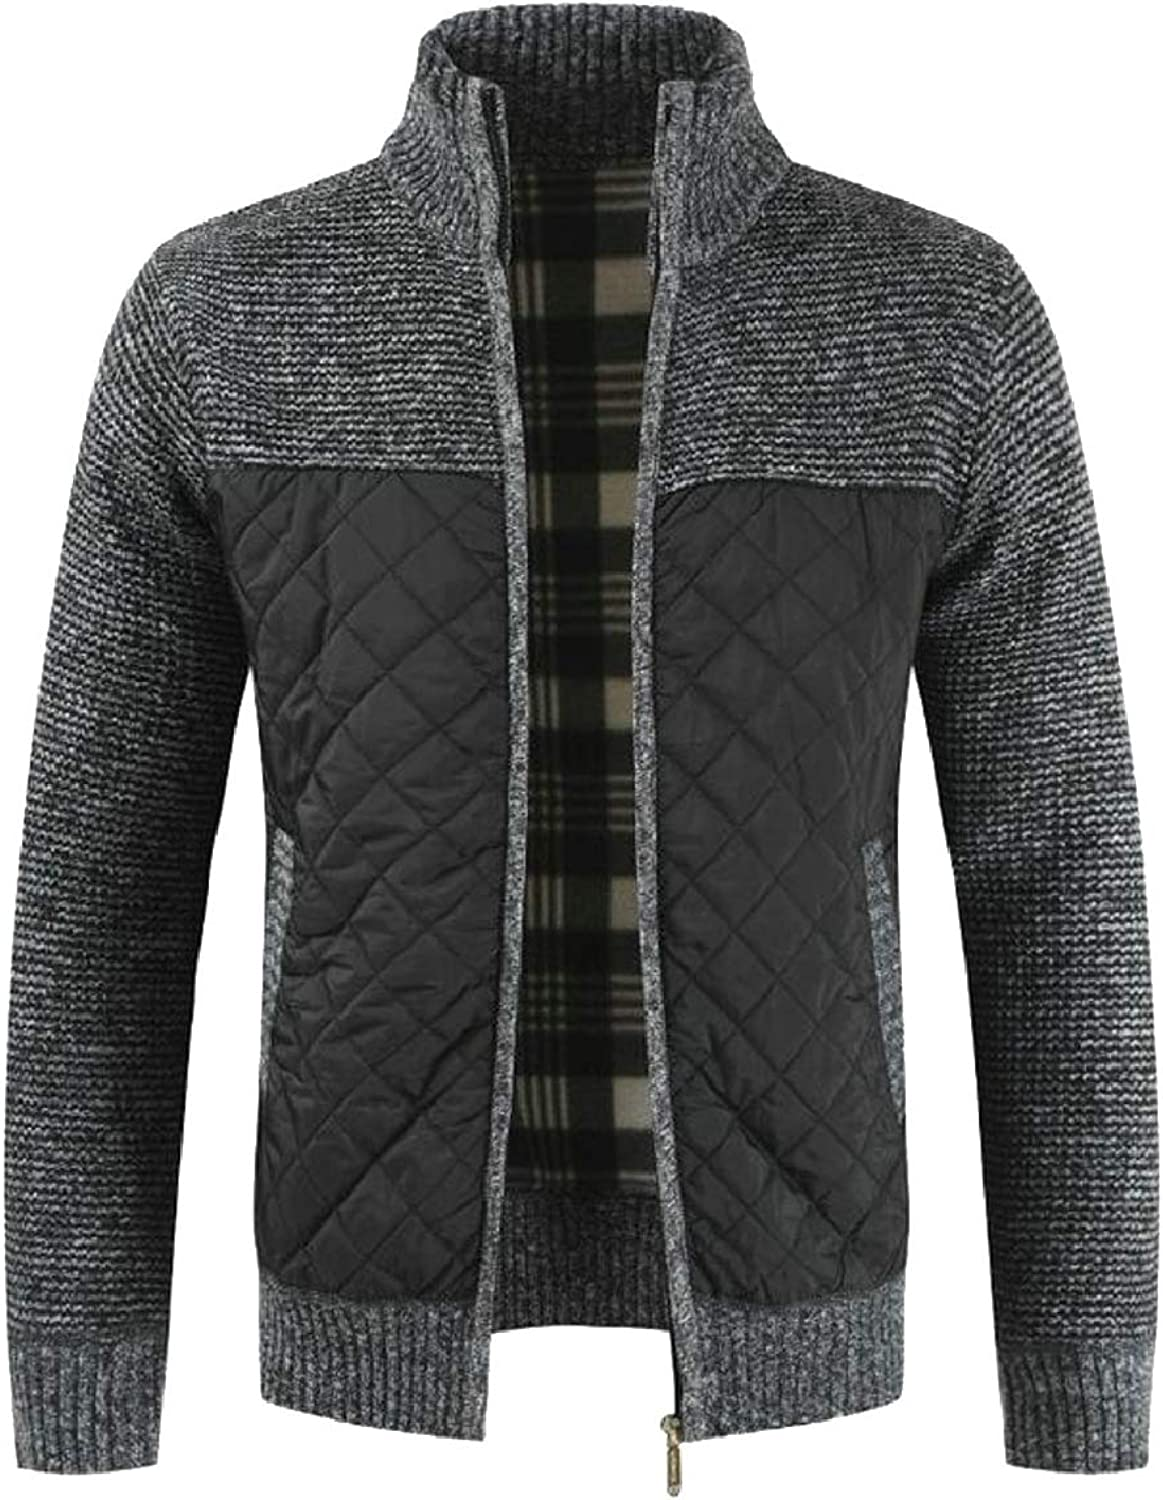 72d3858c Xswsy XG-CA Men's Vintage Zipper Front Front Front Thick Sweater Thick  Jacket Cardigan e20705